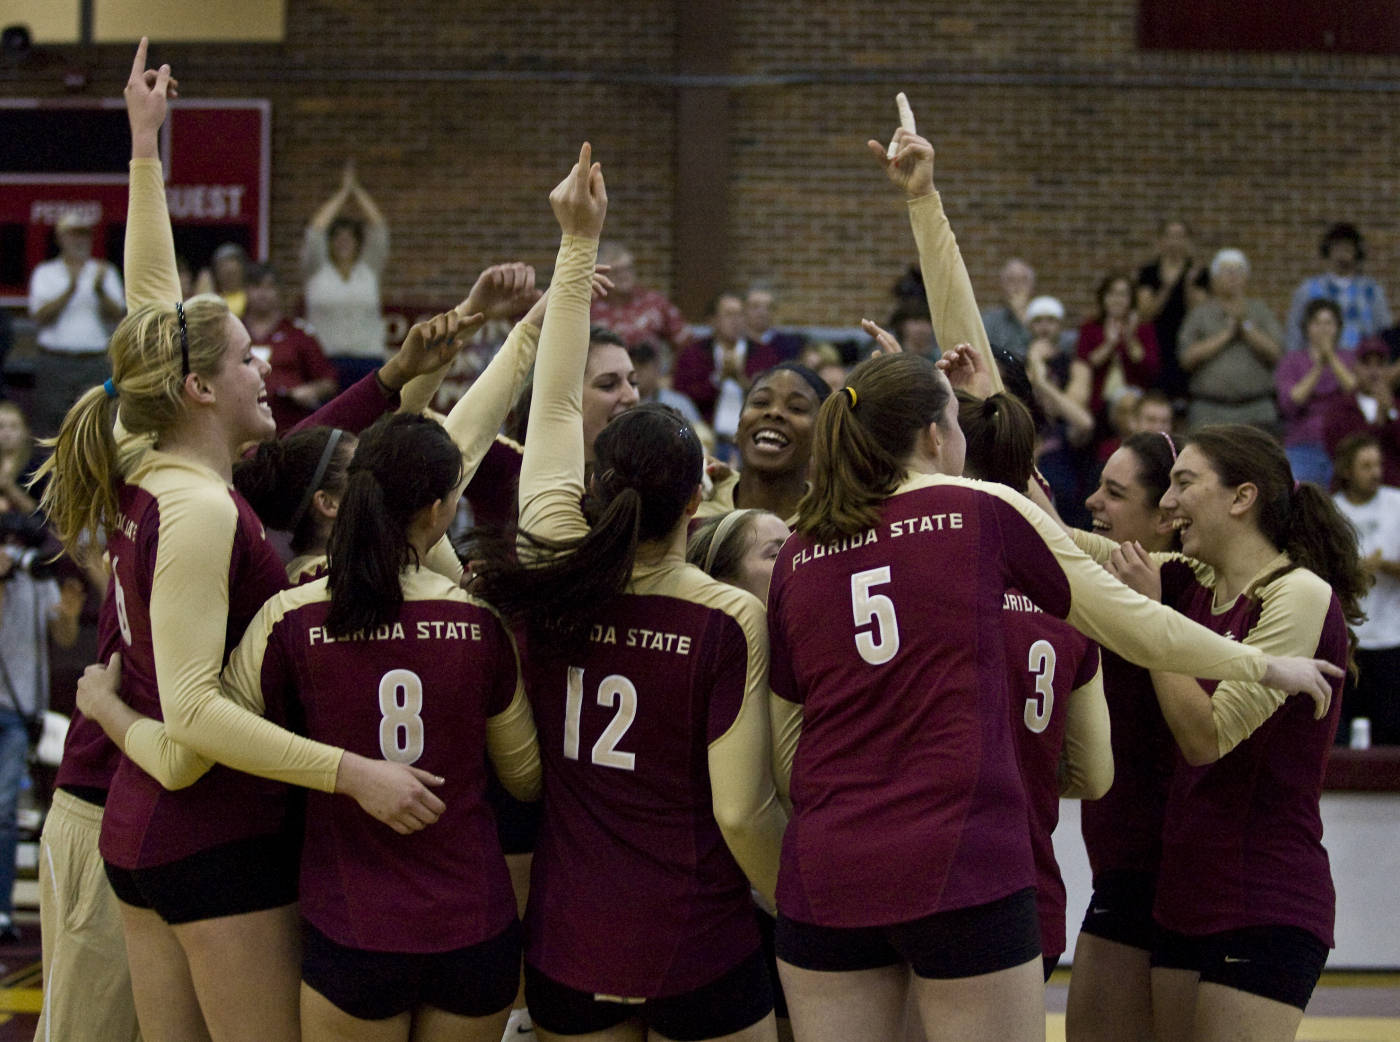 The Seminoles are outright ACC Champions for the first time in school history!